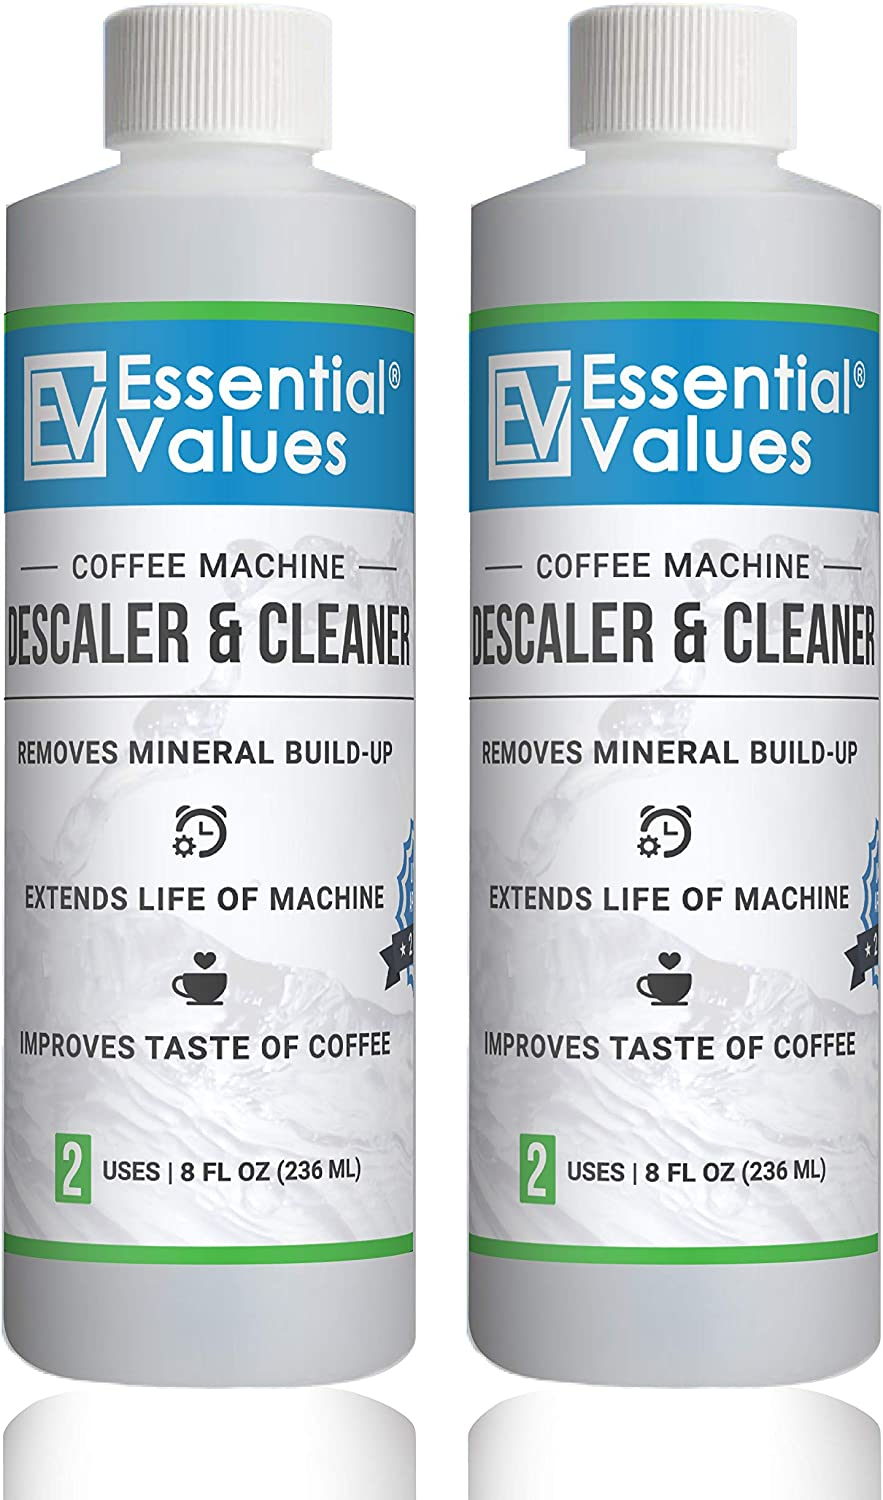 Essential Values Universal Descaling Solution (2 Pack / 4 Uses Total), Designed to Clean Keurig, Nespresso, Delonghi and All Single Use Coffee Pot and Espresso Machines - Proudly Made In USA